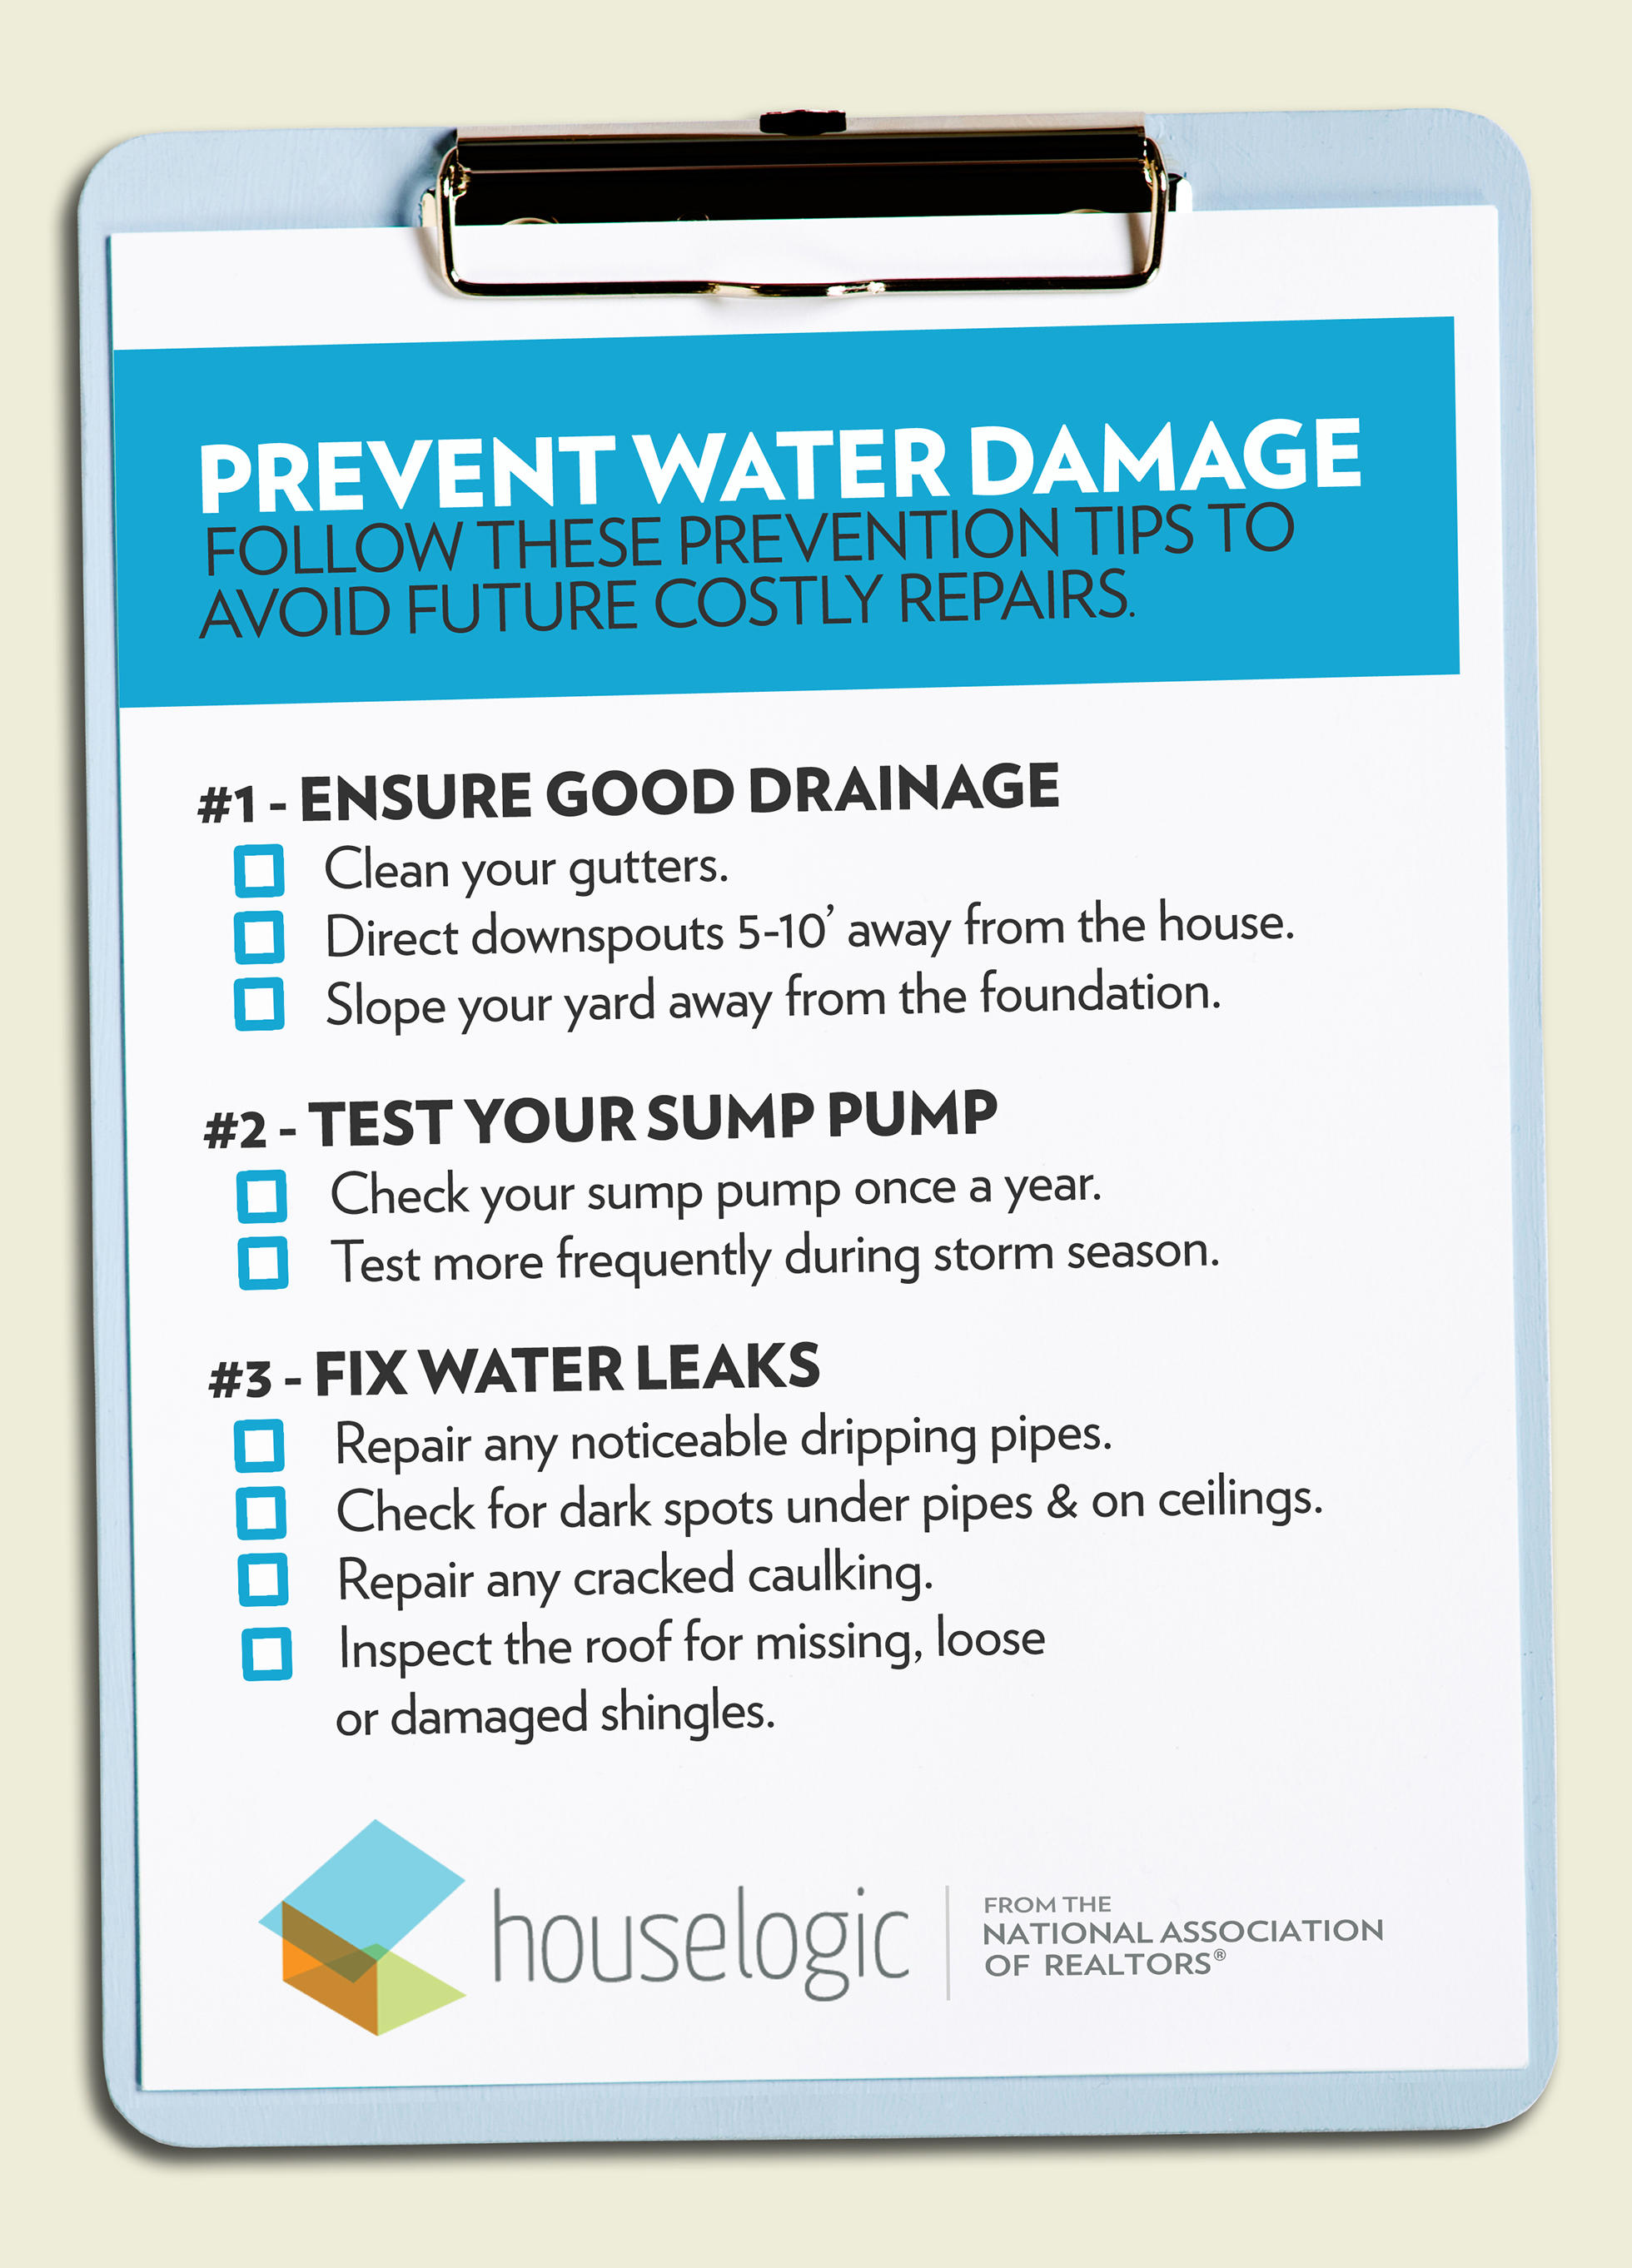 How to prevent water damage checklist